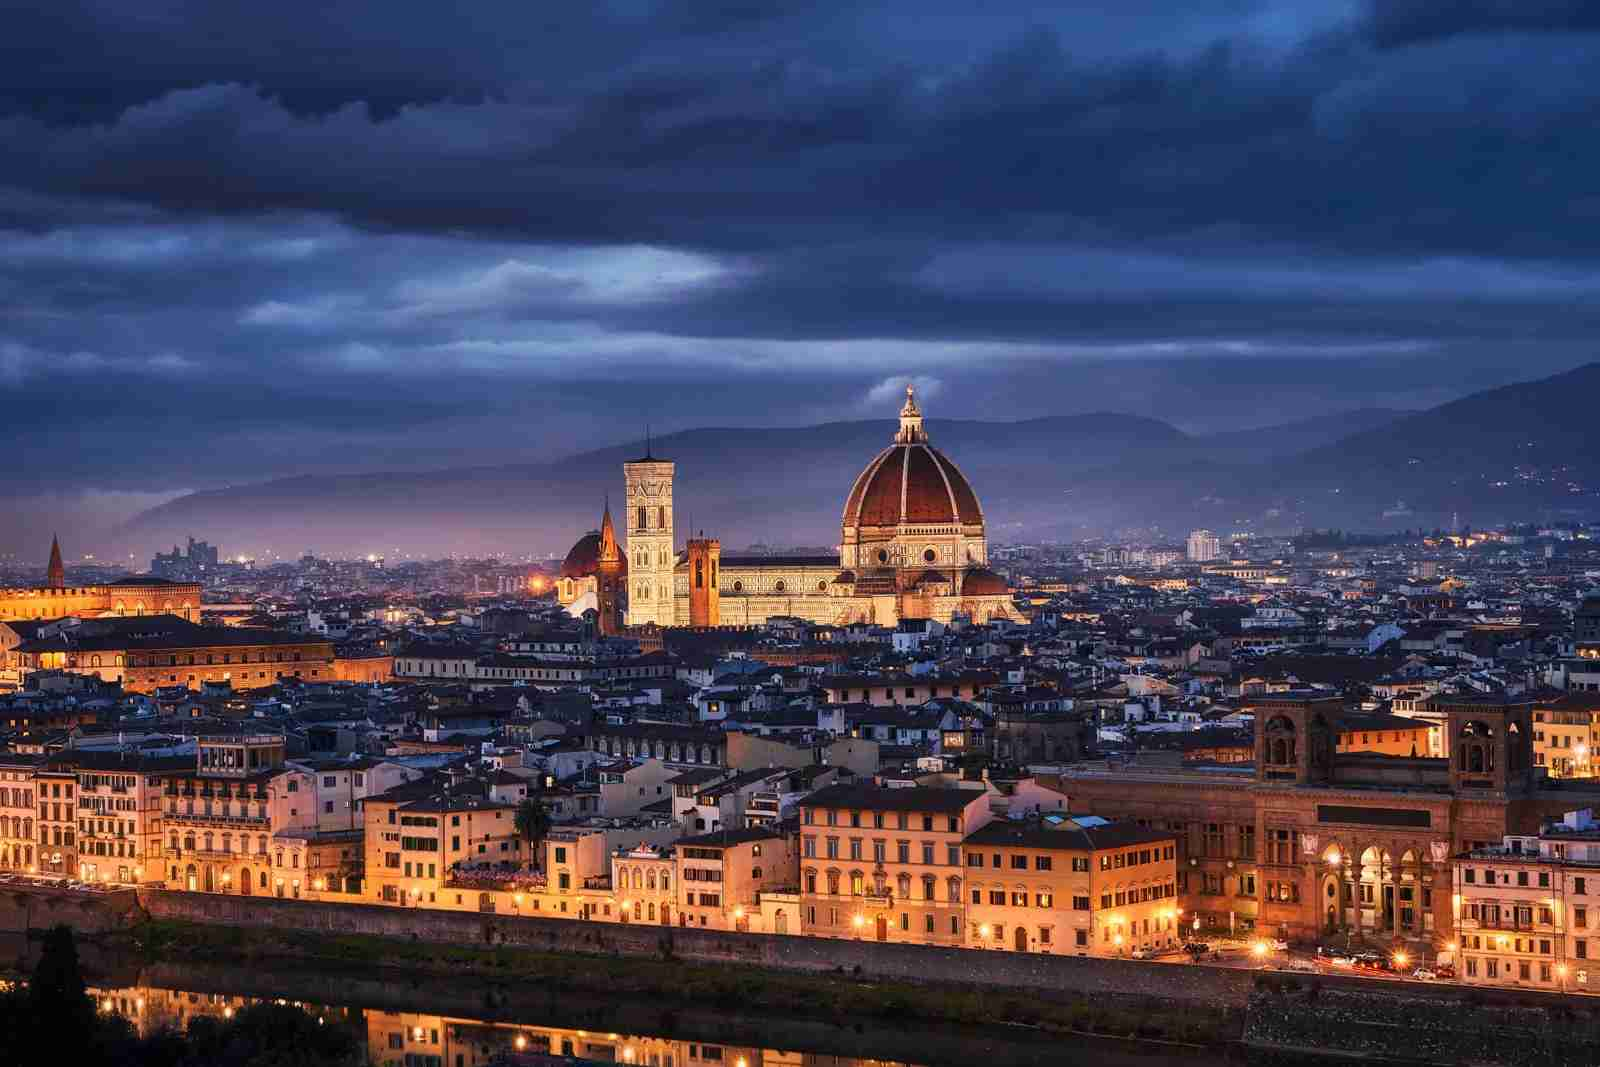 The Duomo. (Photo by Elena Pueyo / Getty Images)